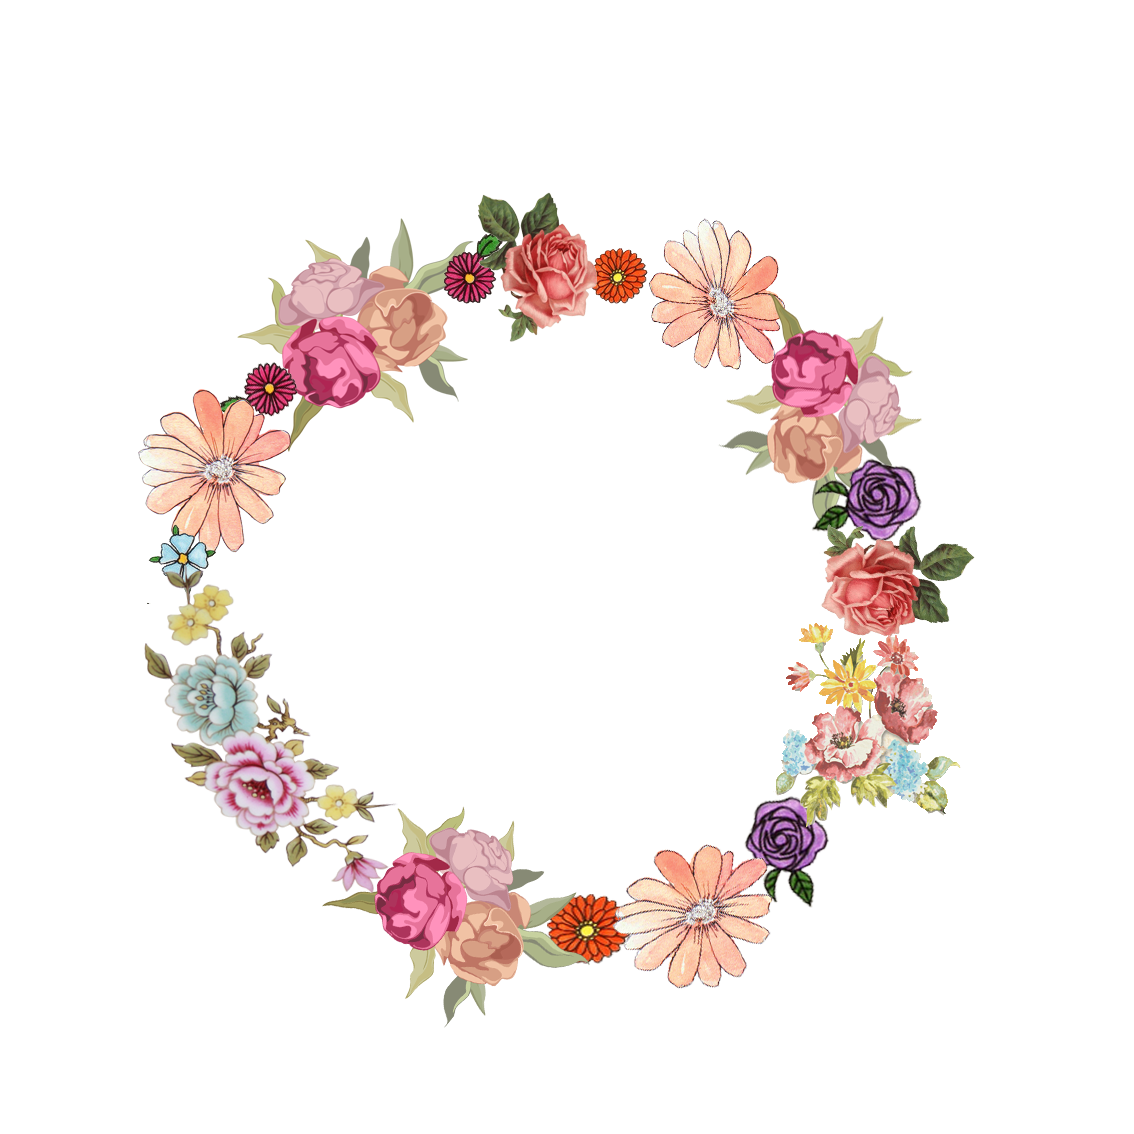 Photoshop clipart flower crown png black and white library 5.png (1134×1134) | frames | Pinterest | Corona, Photoshop and Journal png black and white library